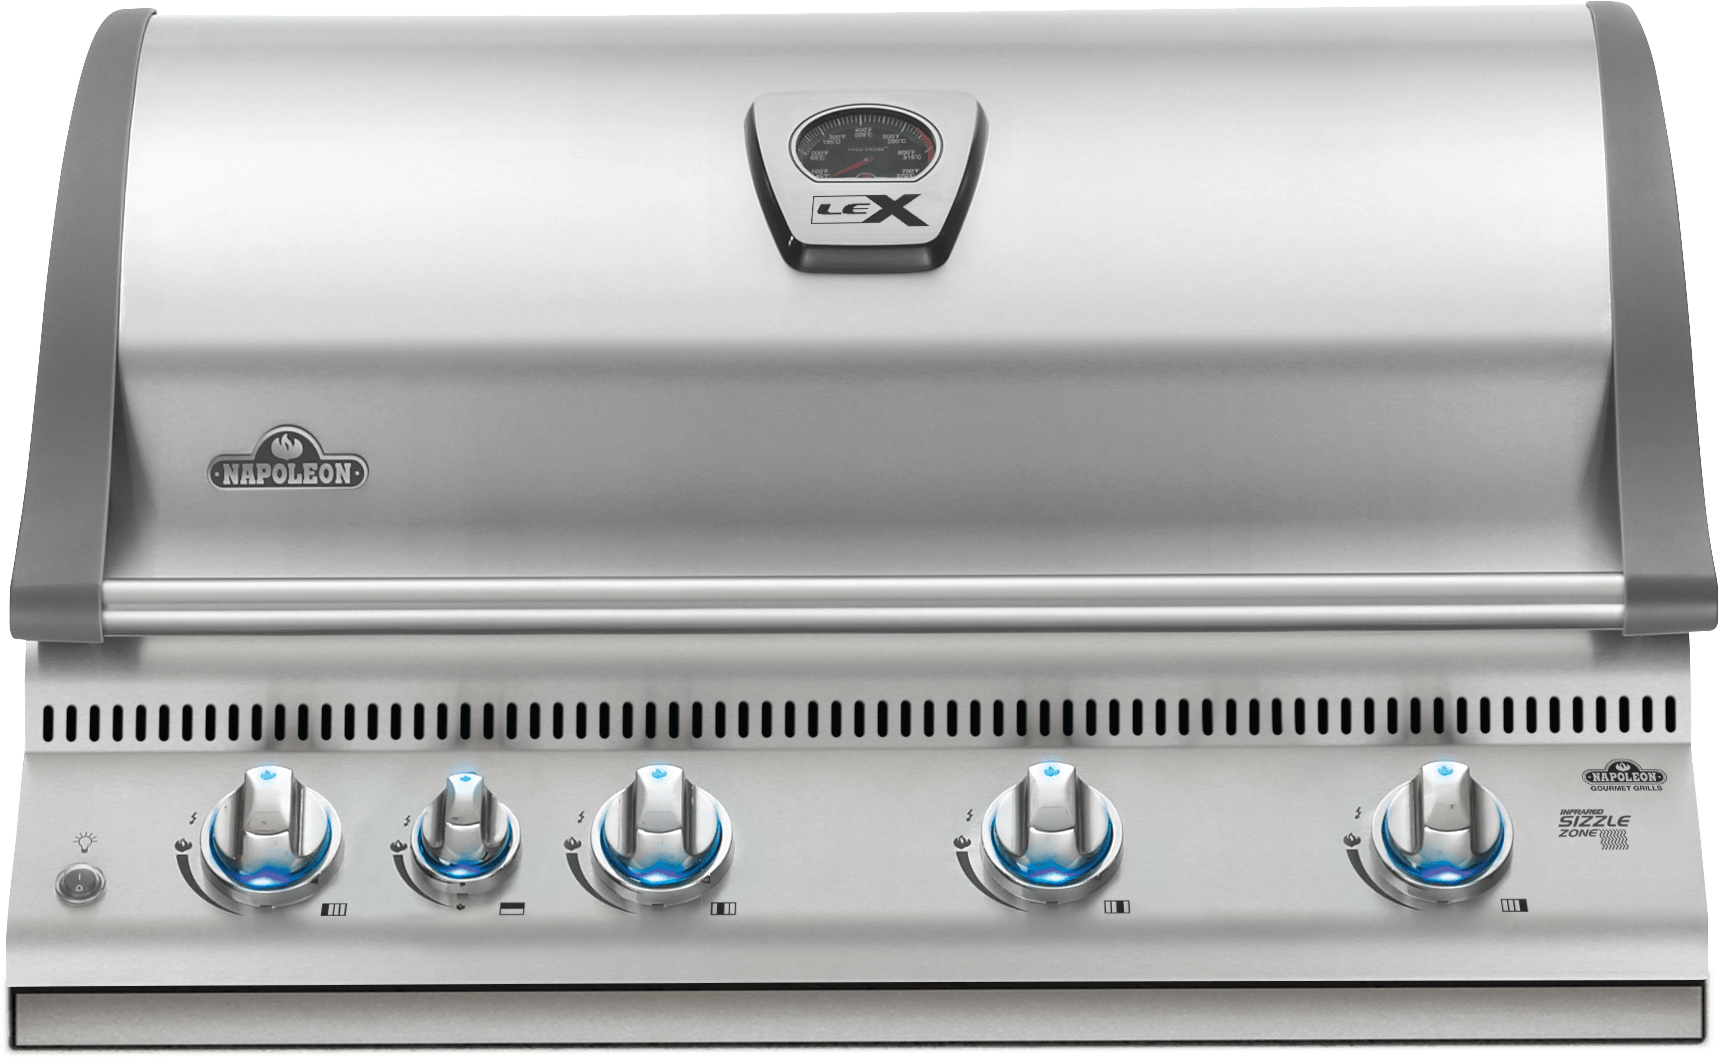 Napoleon Built-in LEX 605 Propane Gas Grill Head with Infrared Bottom and Rear Burners, Stainless Steel